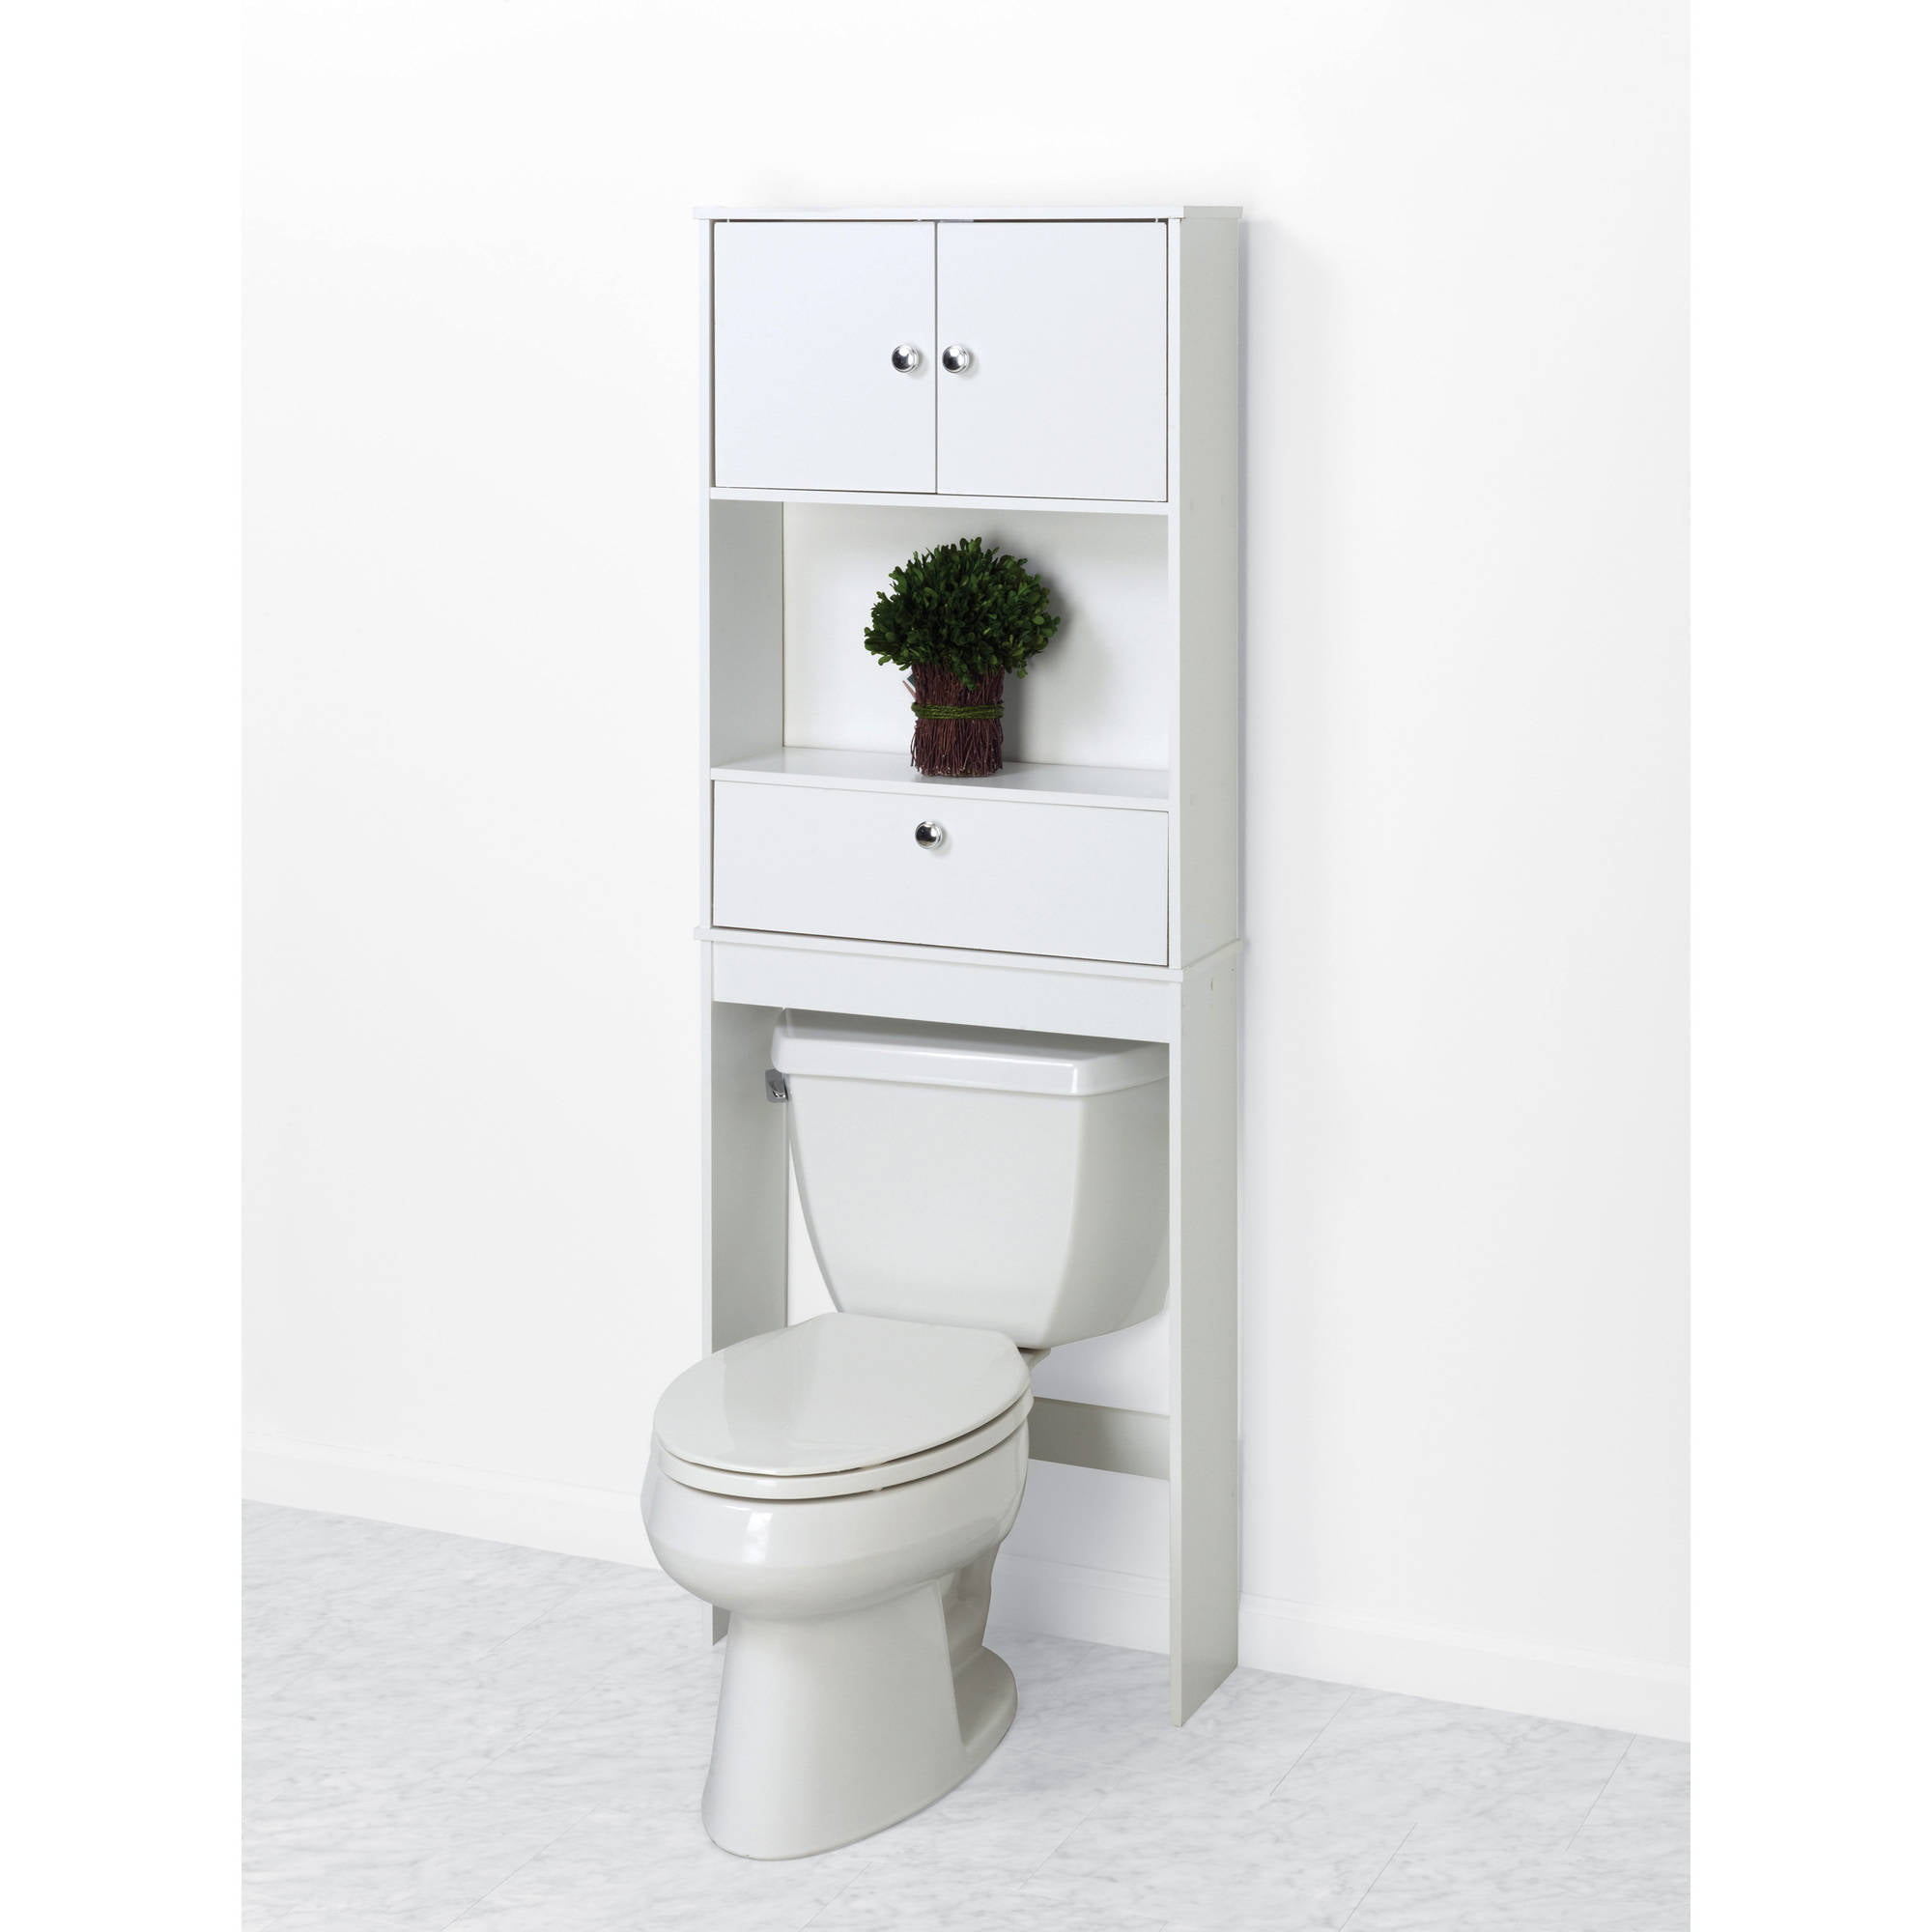 Chapter Kensington Bathroom Space Saver, Multiple Colors - Walmart.com